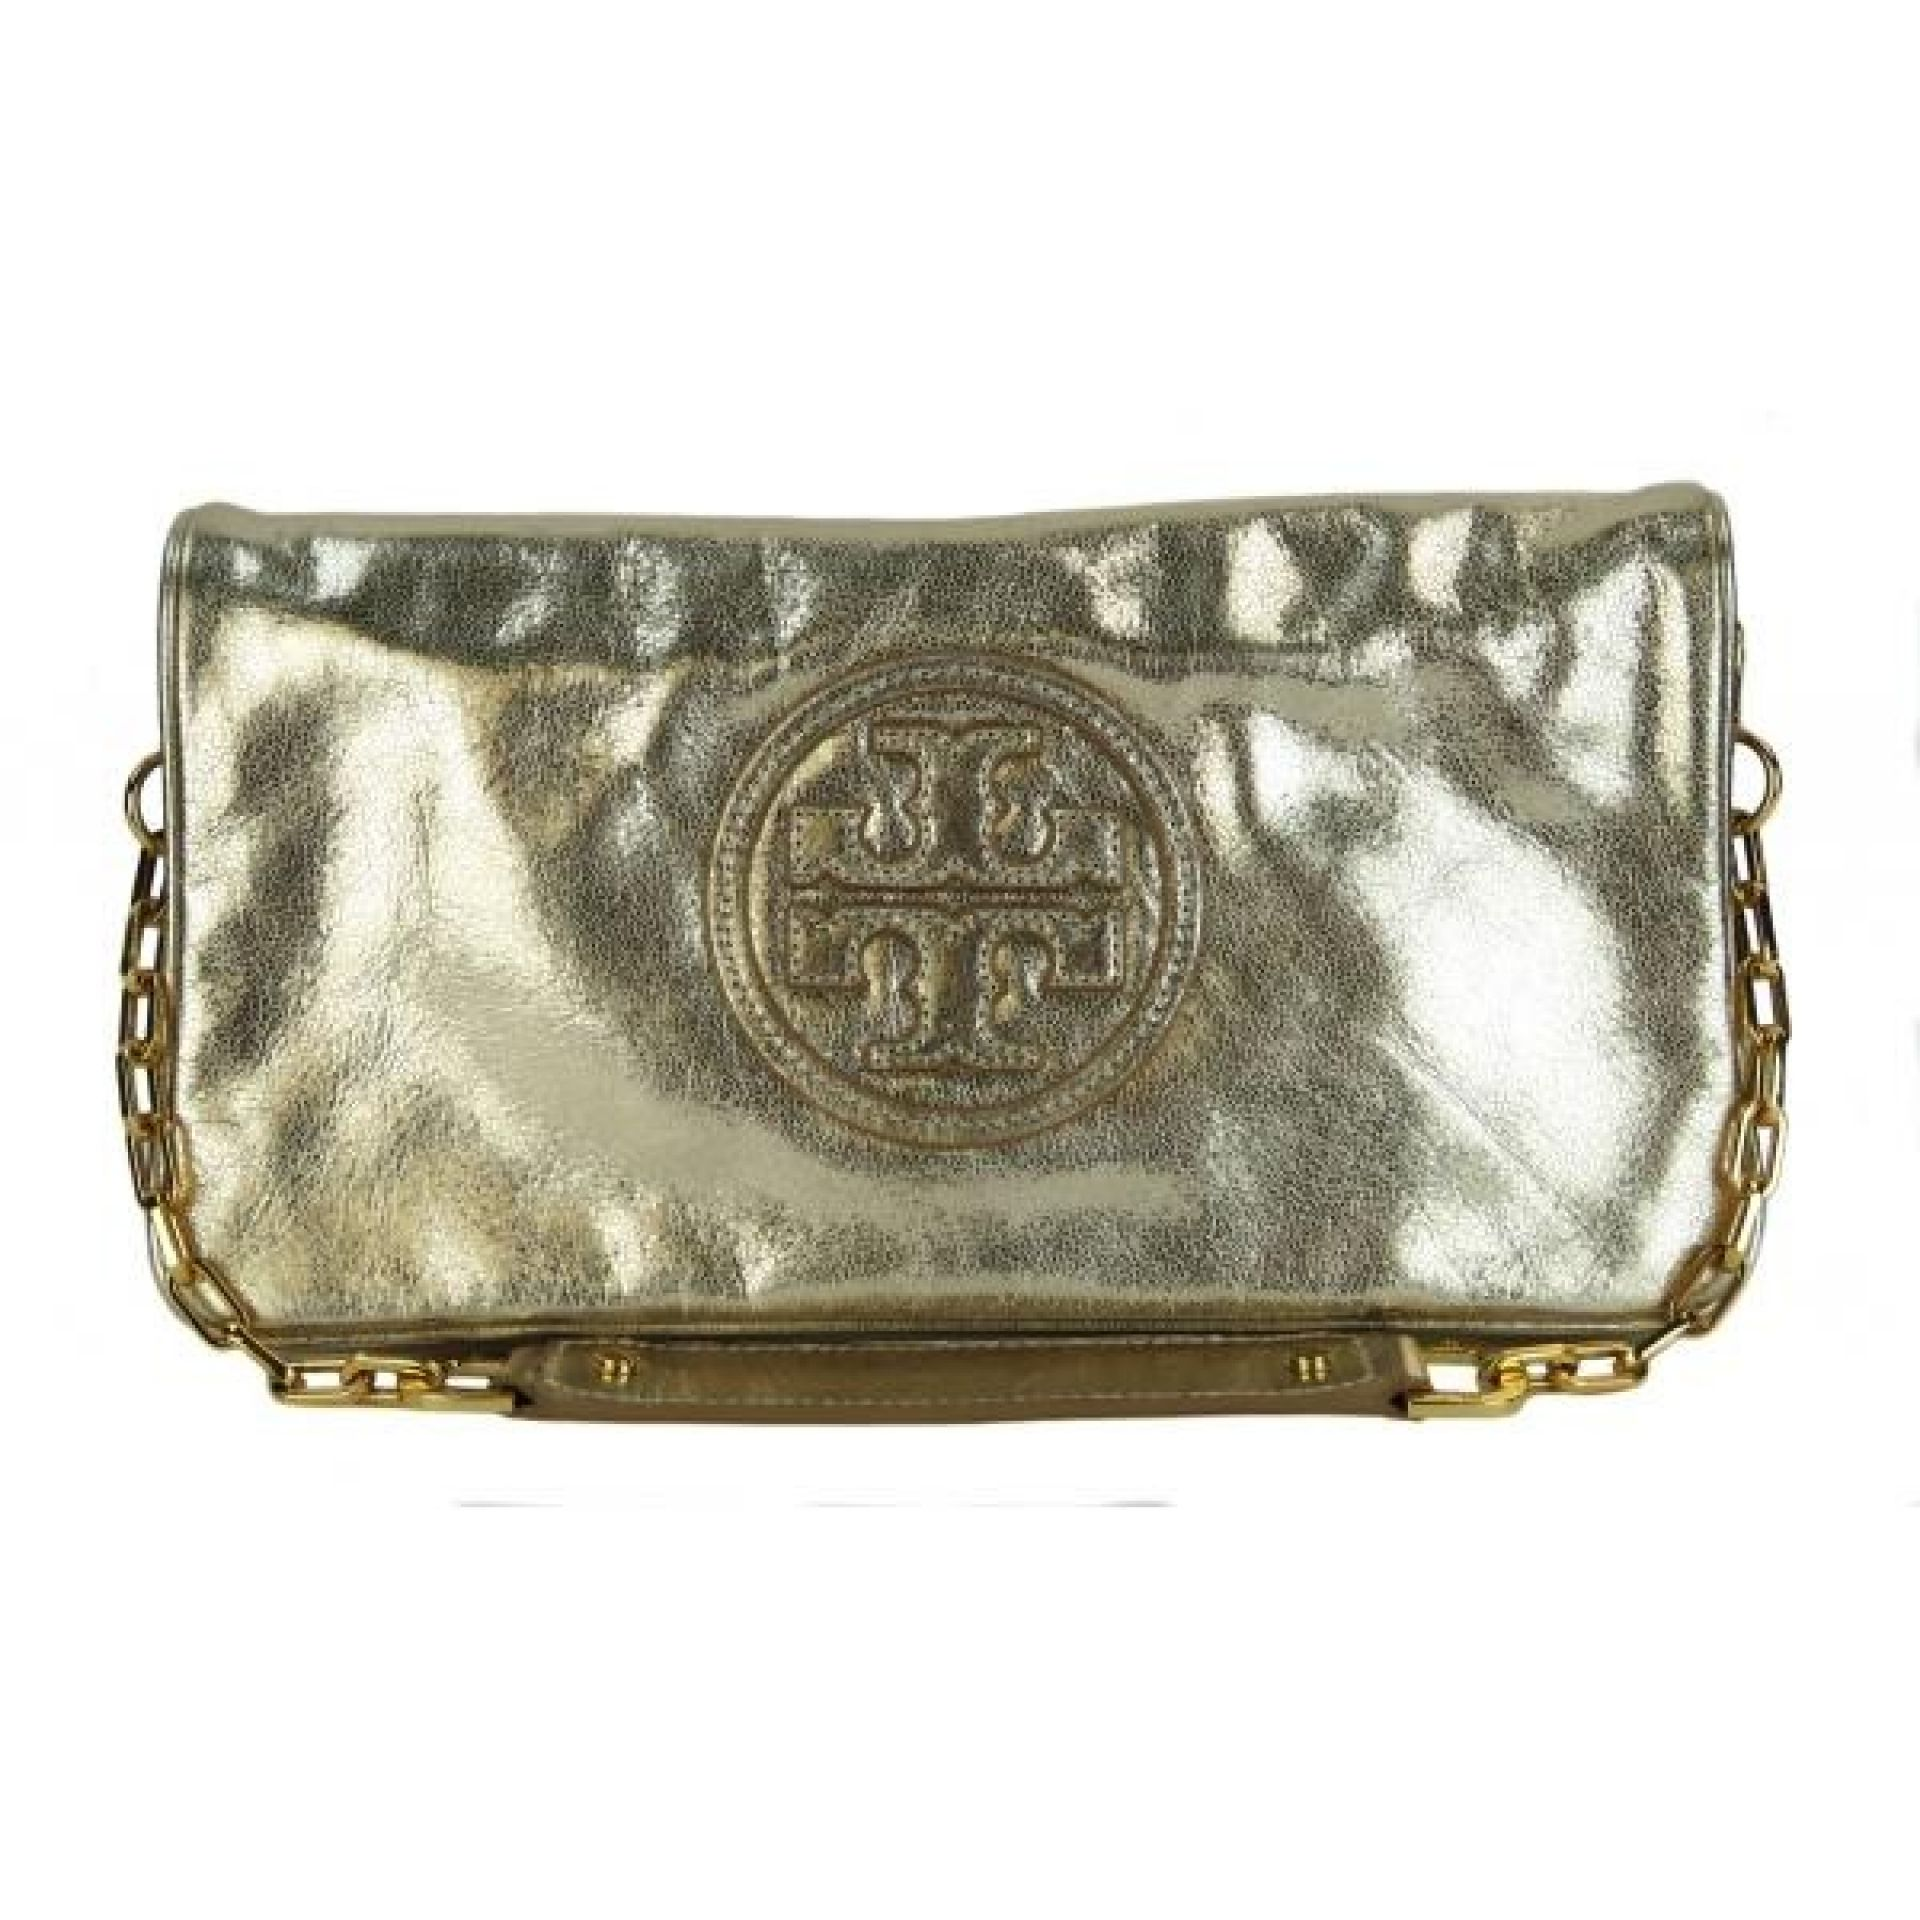 Tory Burch Gold Metallic Leather Chain Strap Bombe Reva Clutch